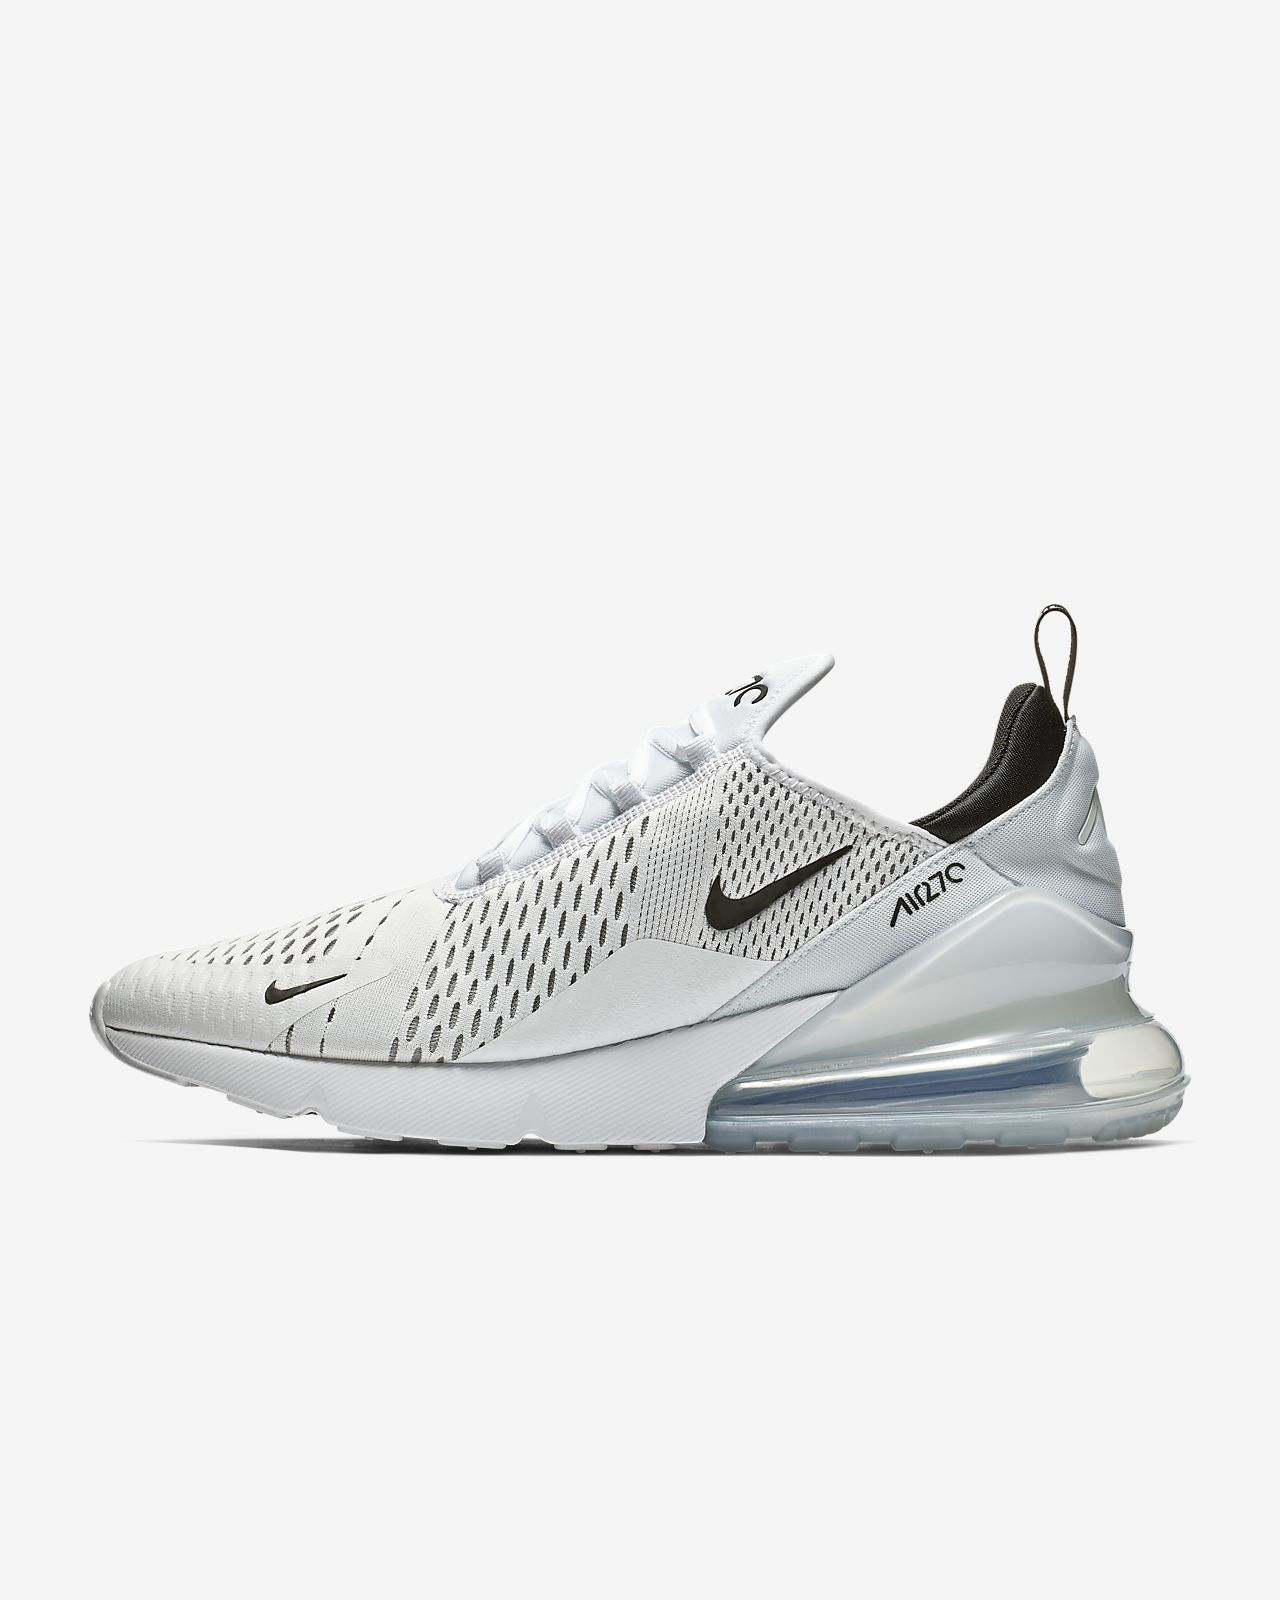 promo code f53e7 1b238 Nike Air Max 270 Men's Shoe. Nike.com GB